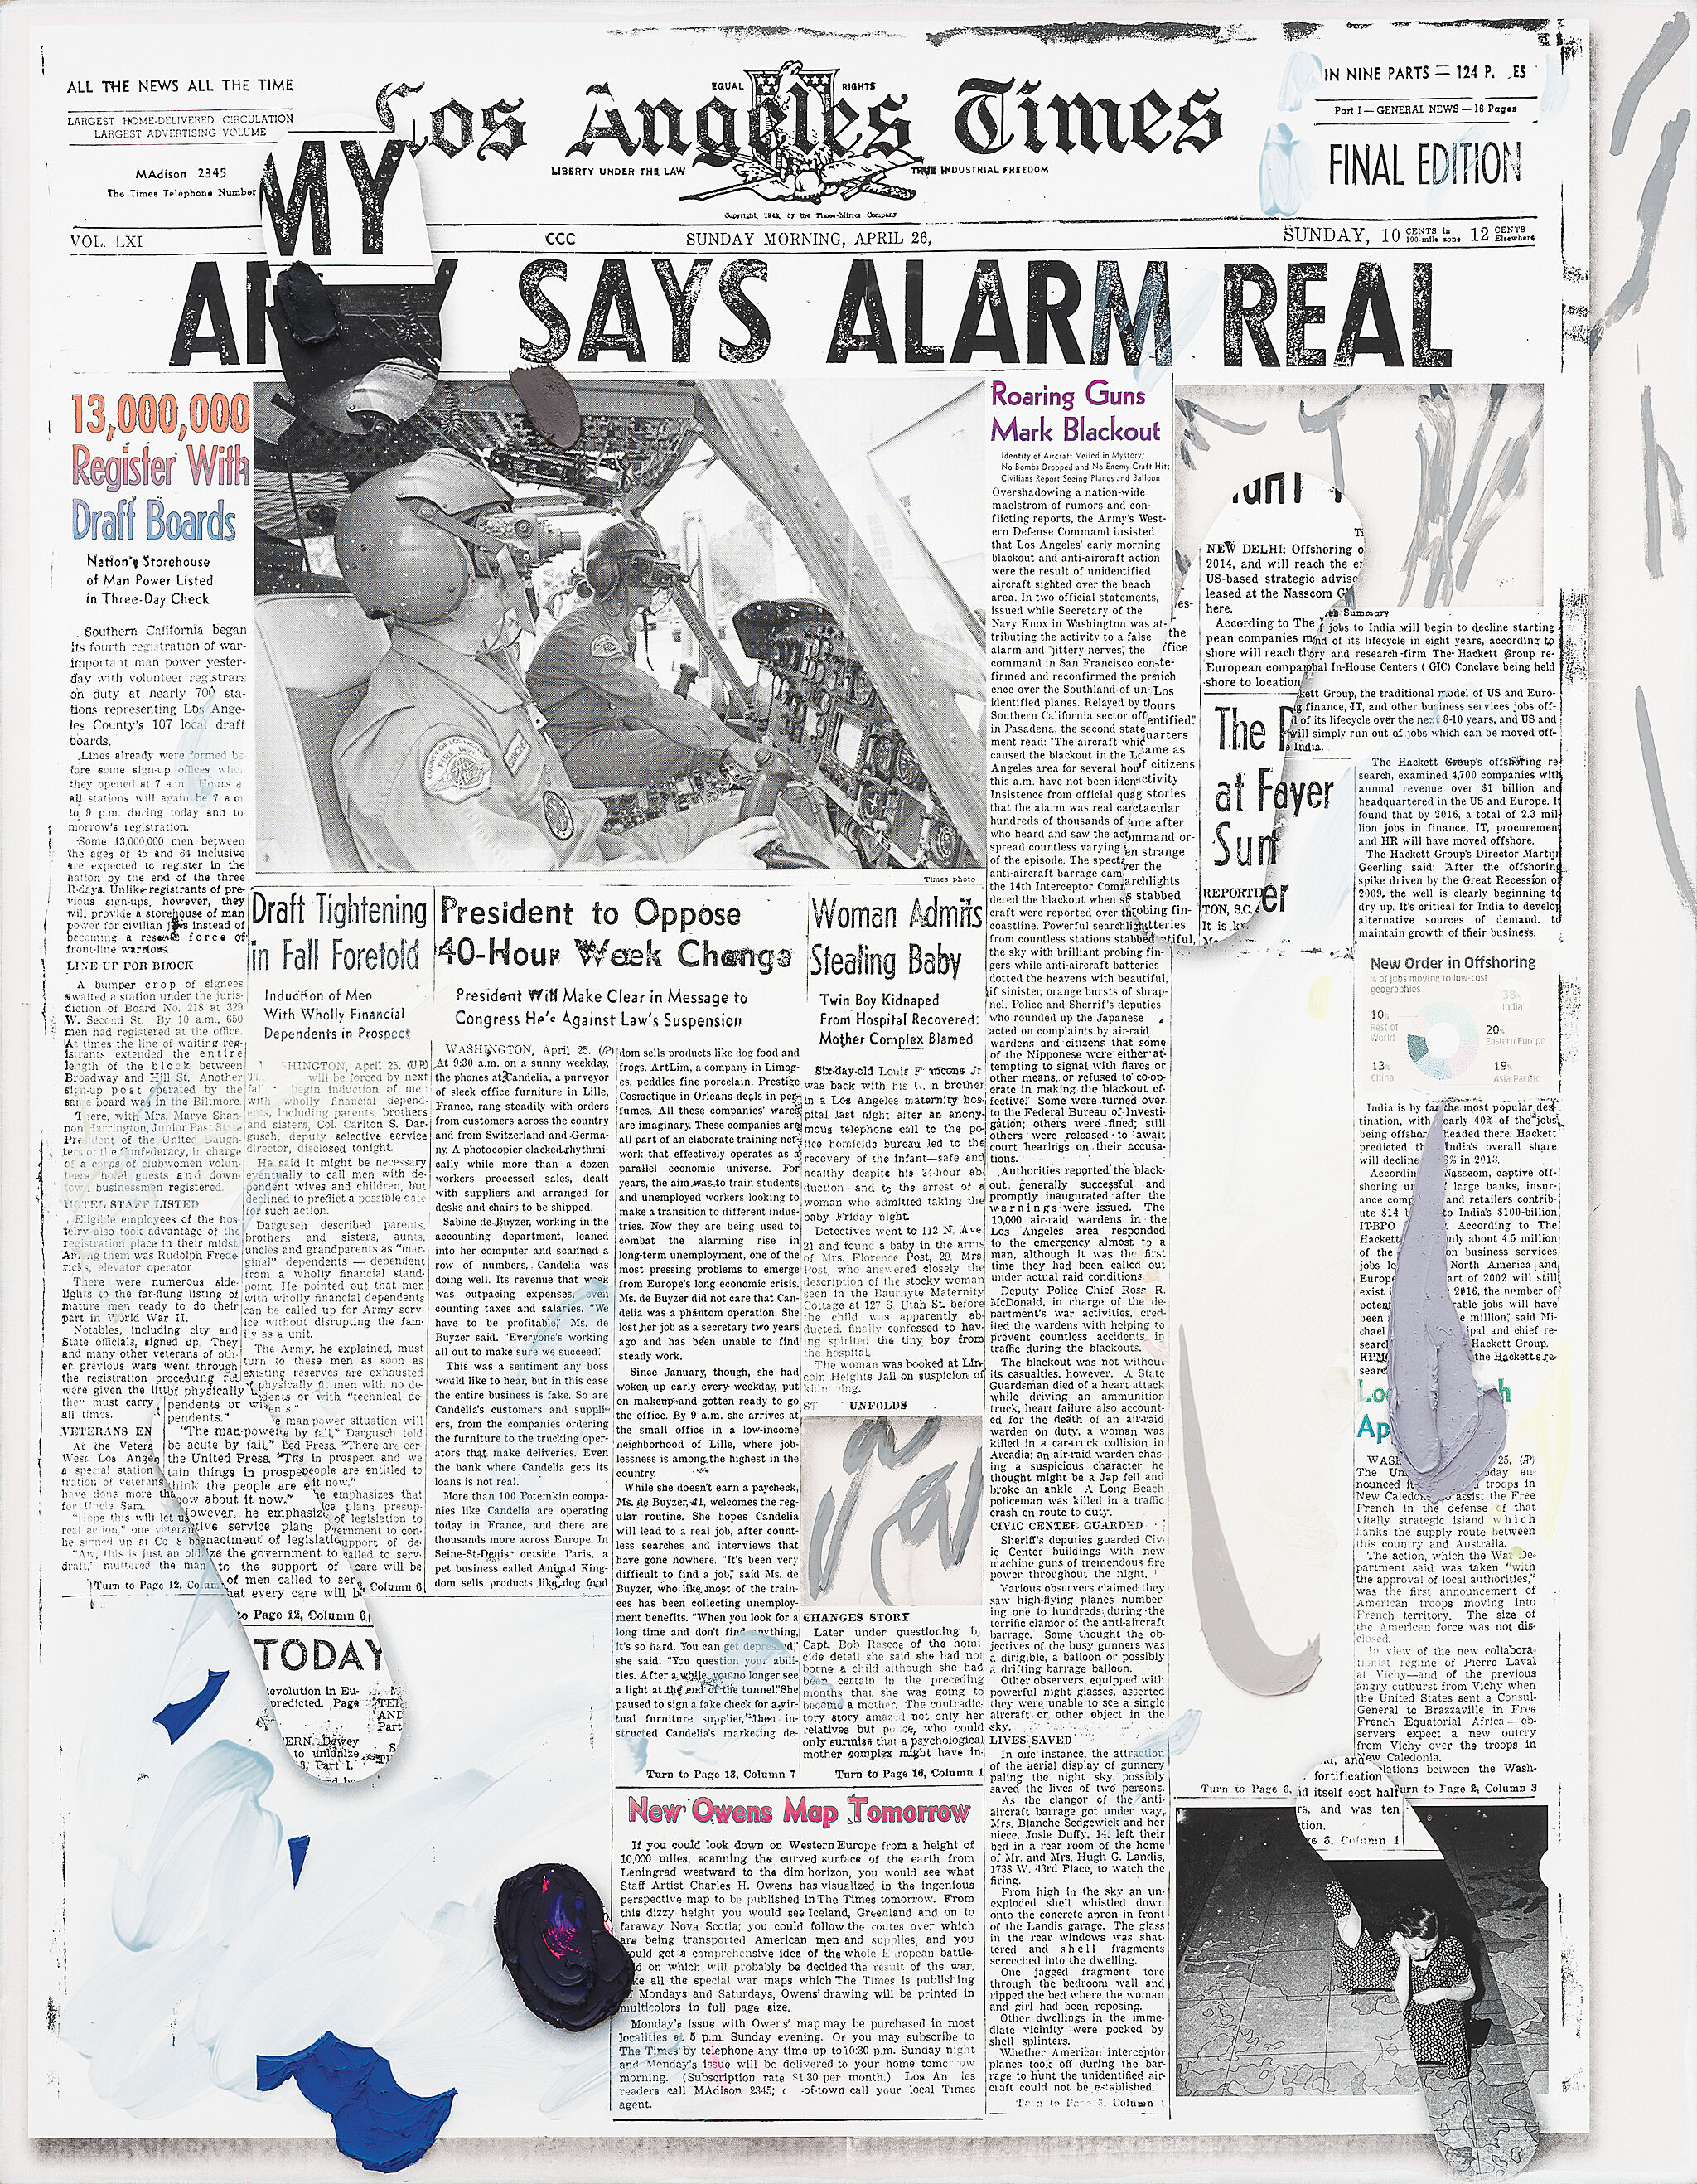 A newspaper collage.